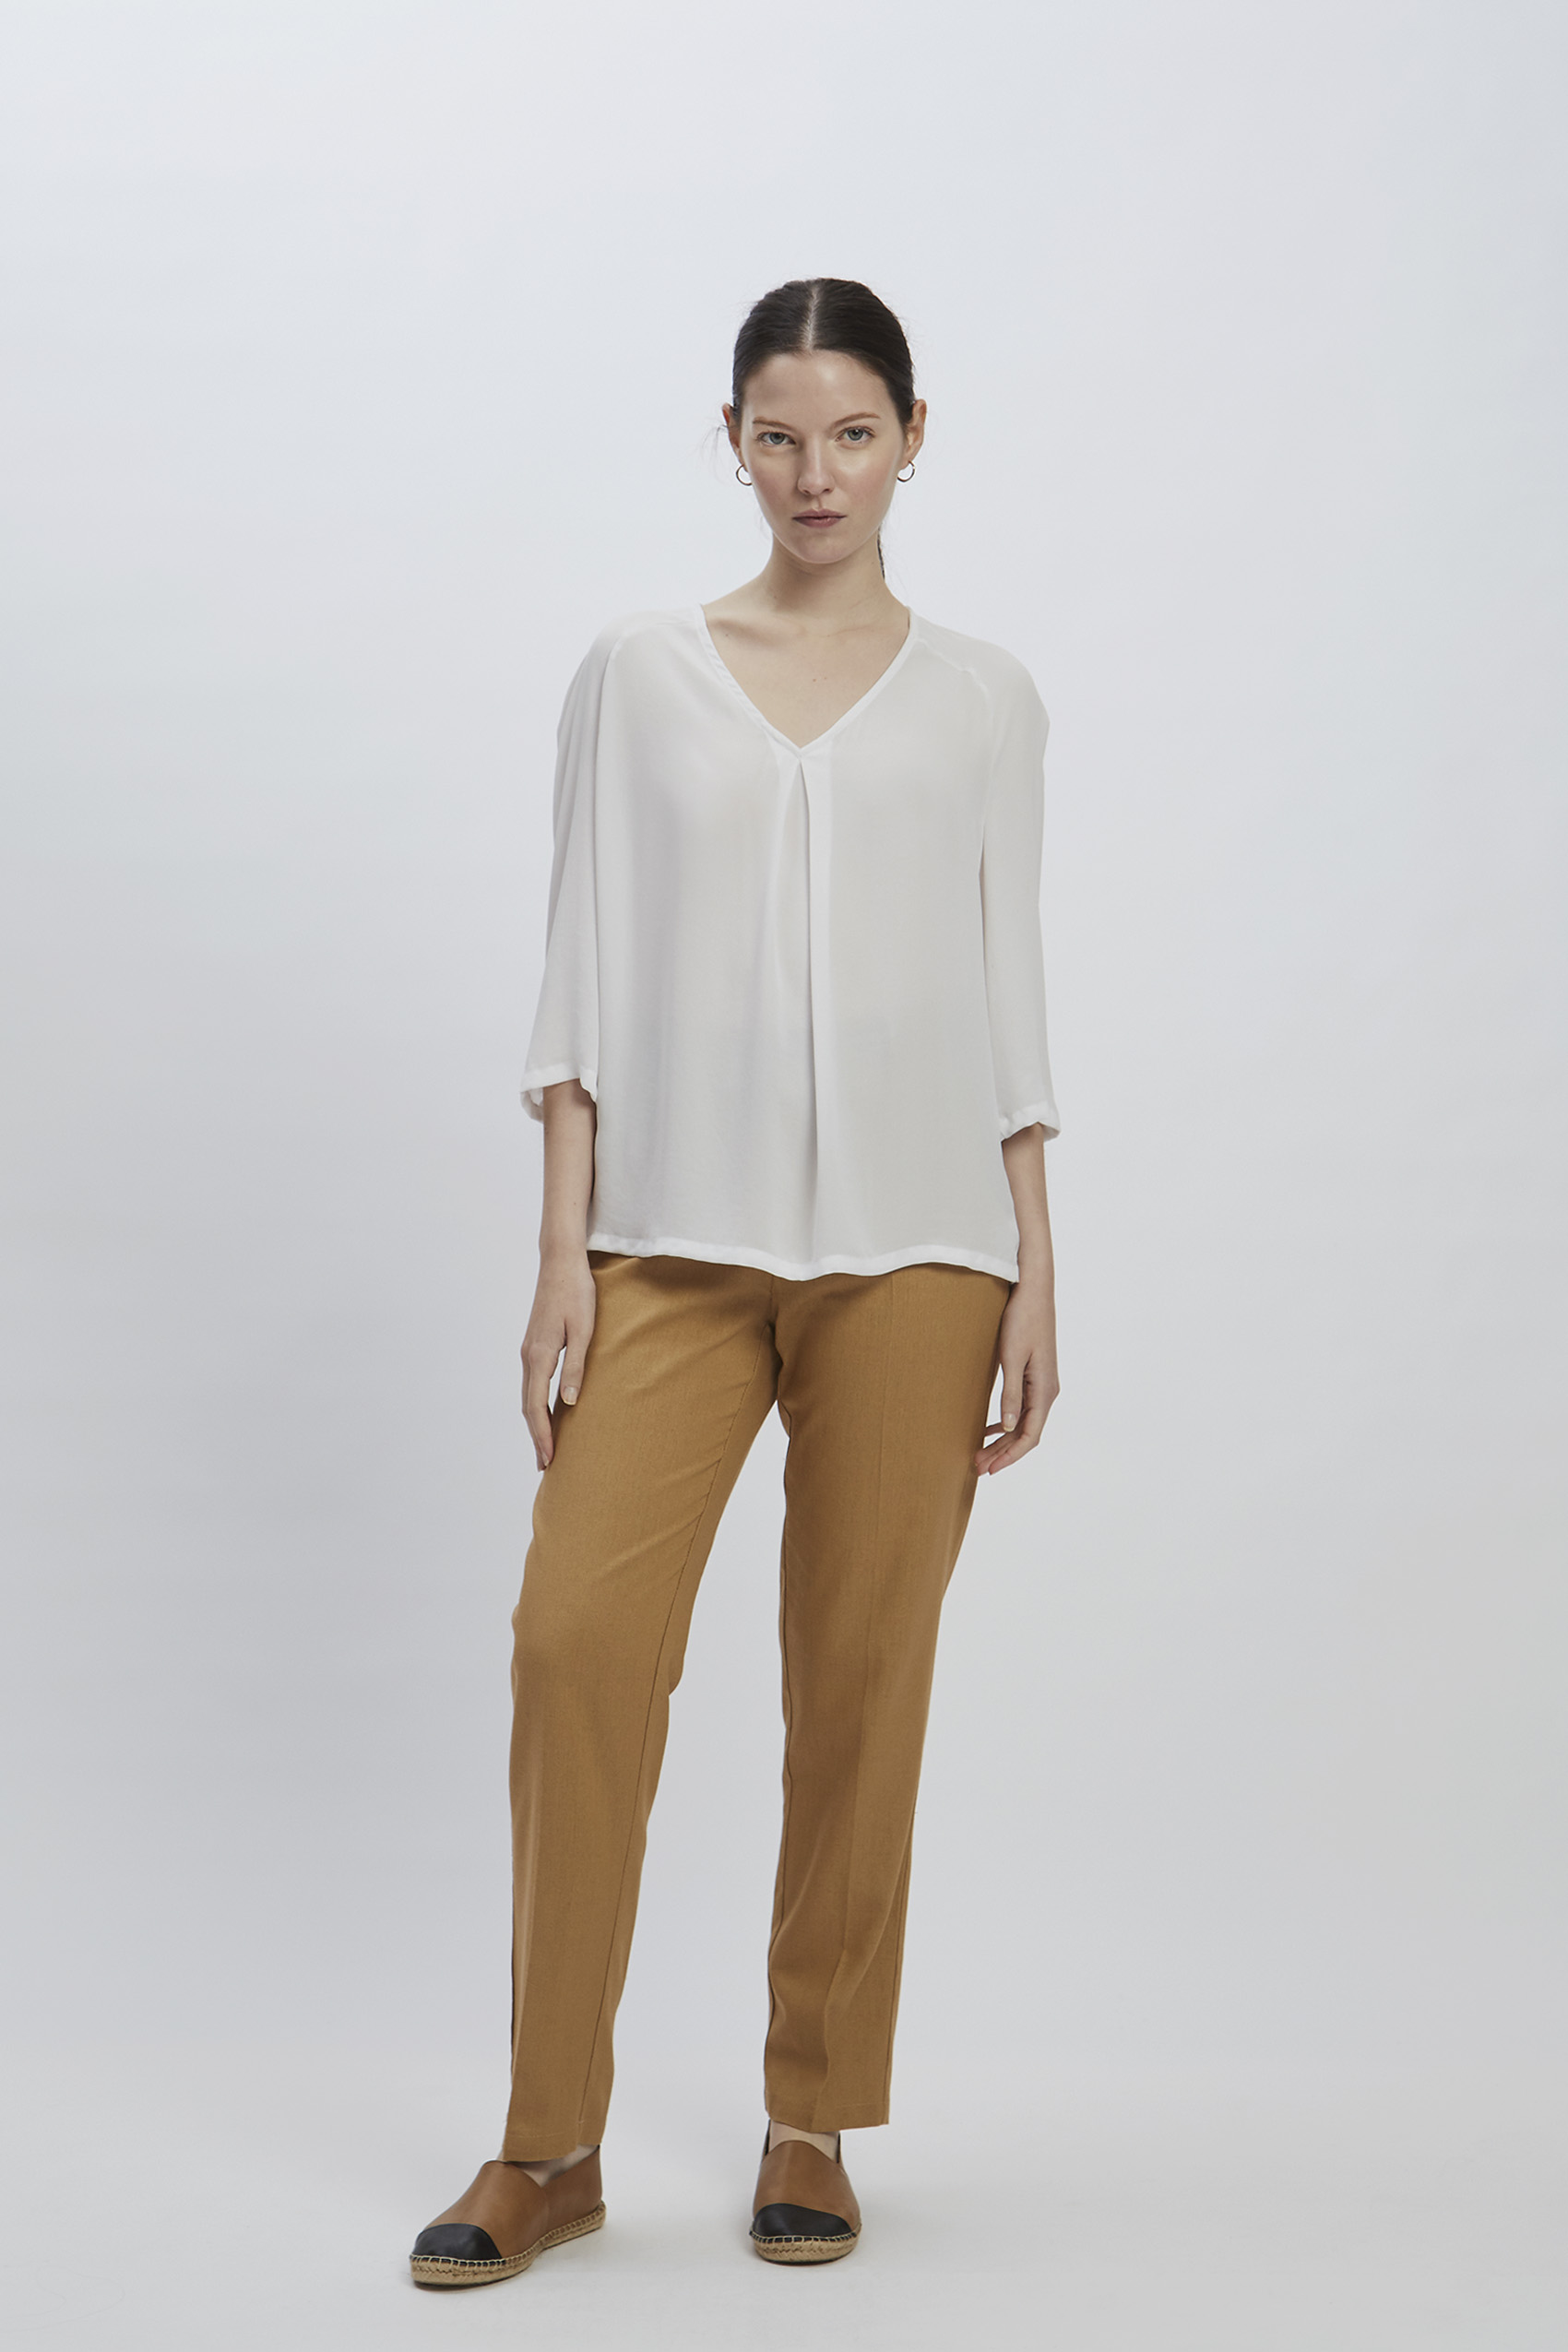 awada_blusa-polly_00-31-2020__picture-15286